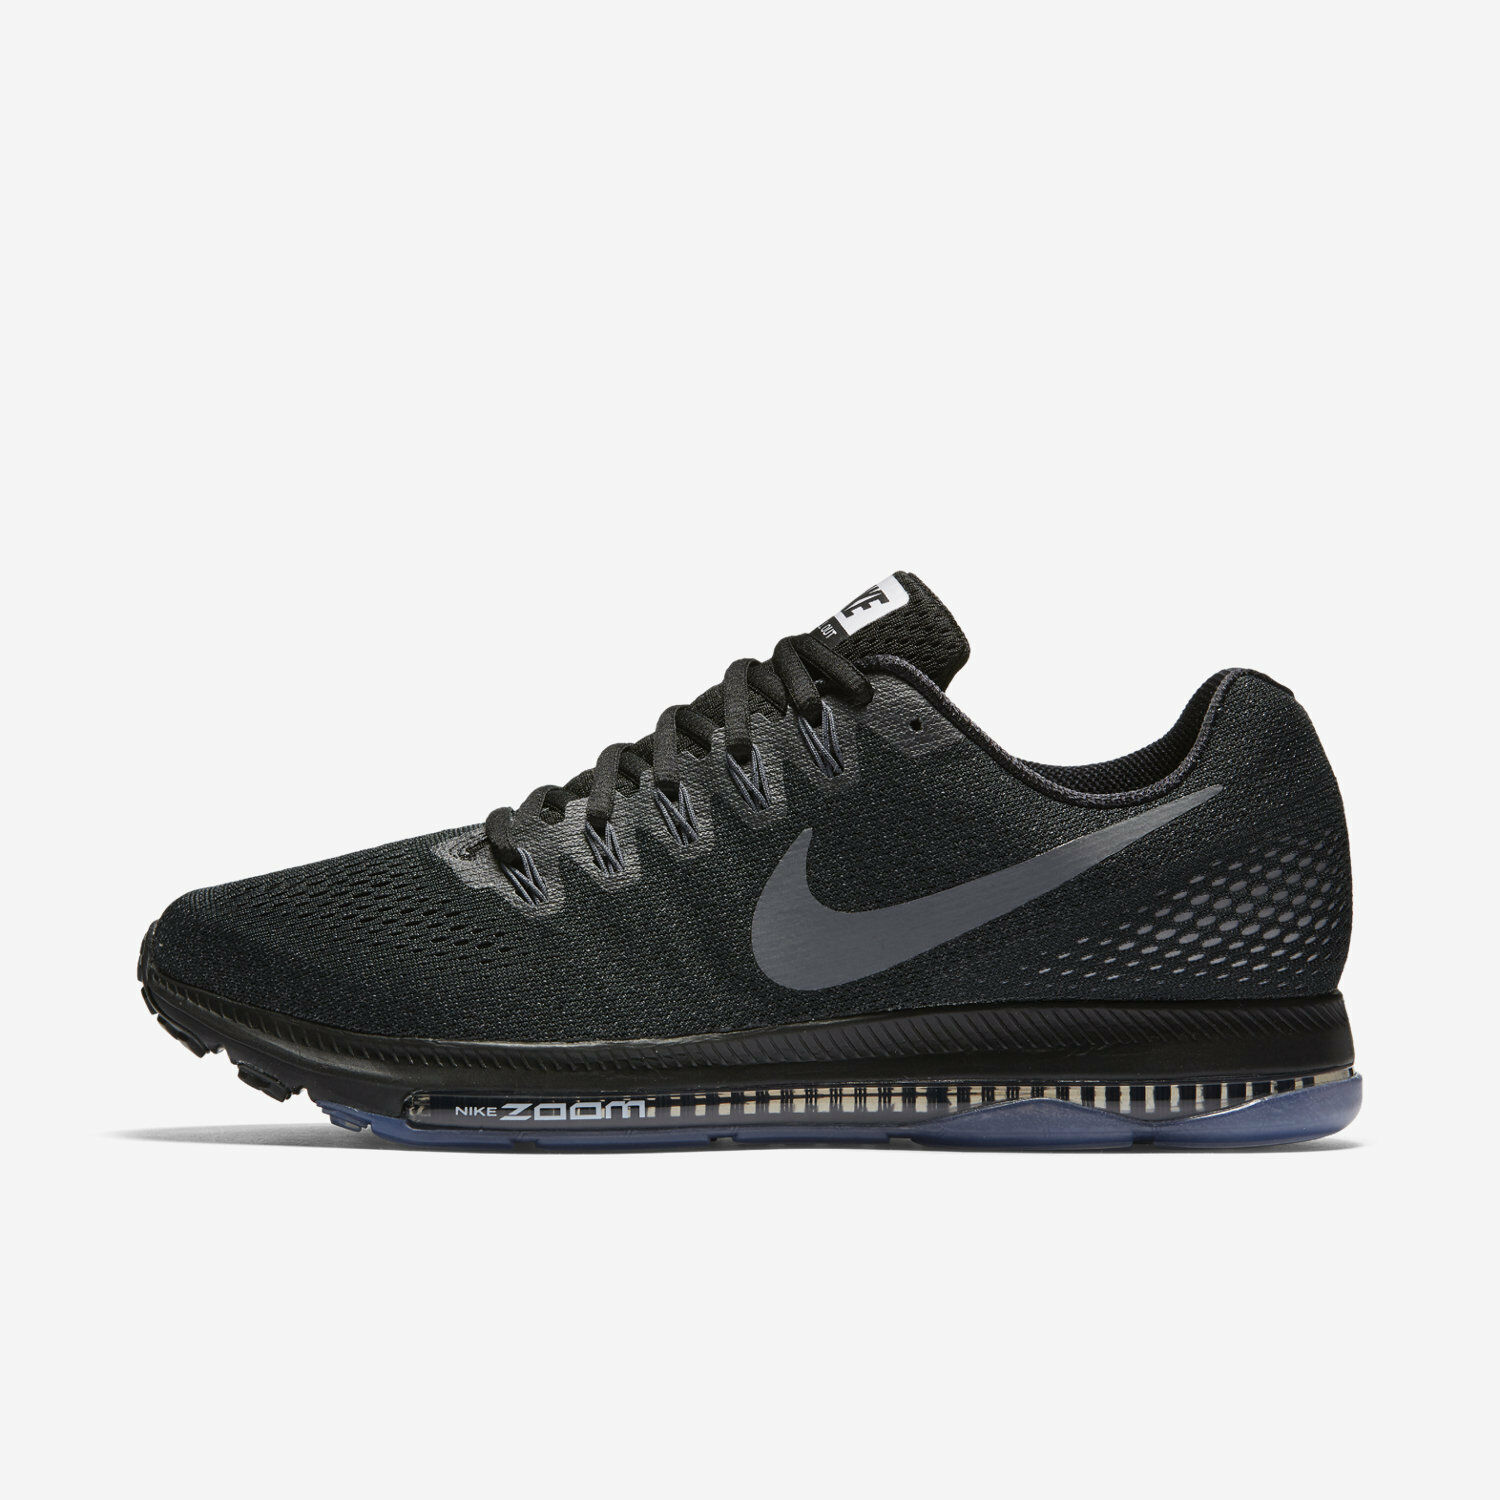 Mns Nike Zoom All Out Low Sz 7-11.5 Black/Grey 878670-001 FREE SHIPPING